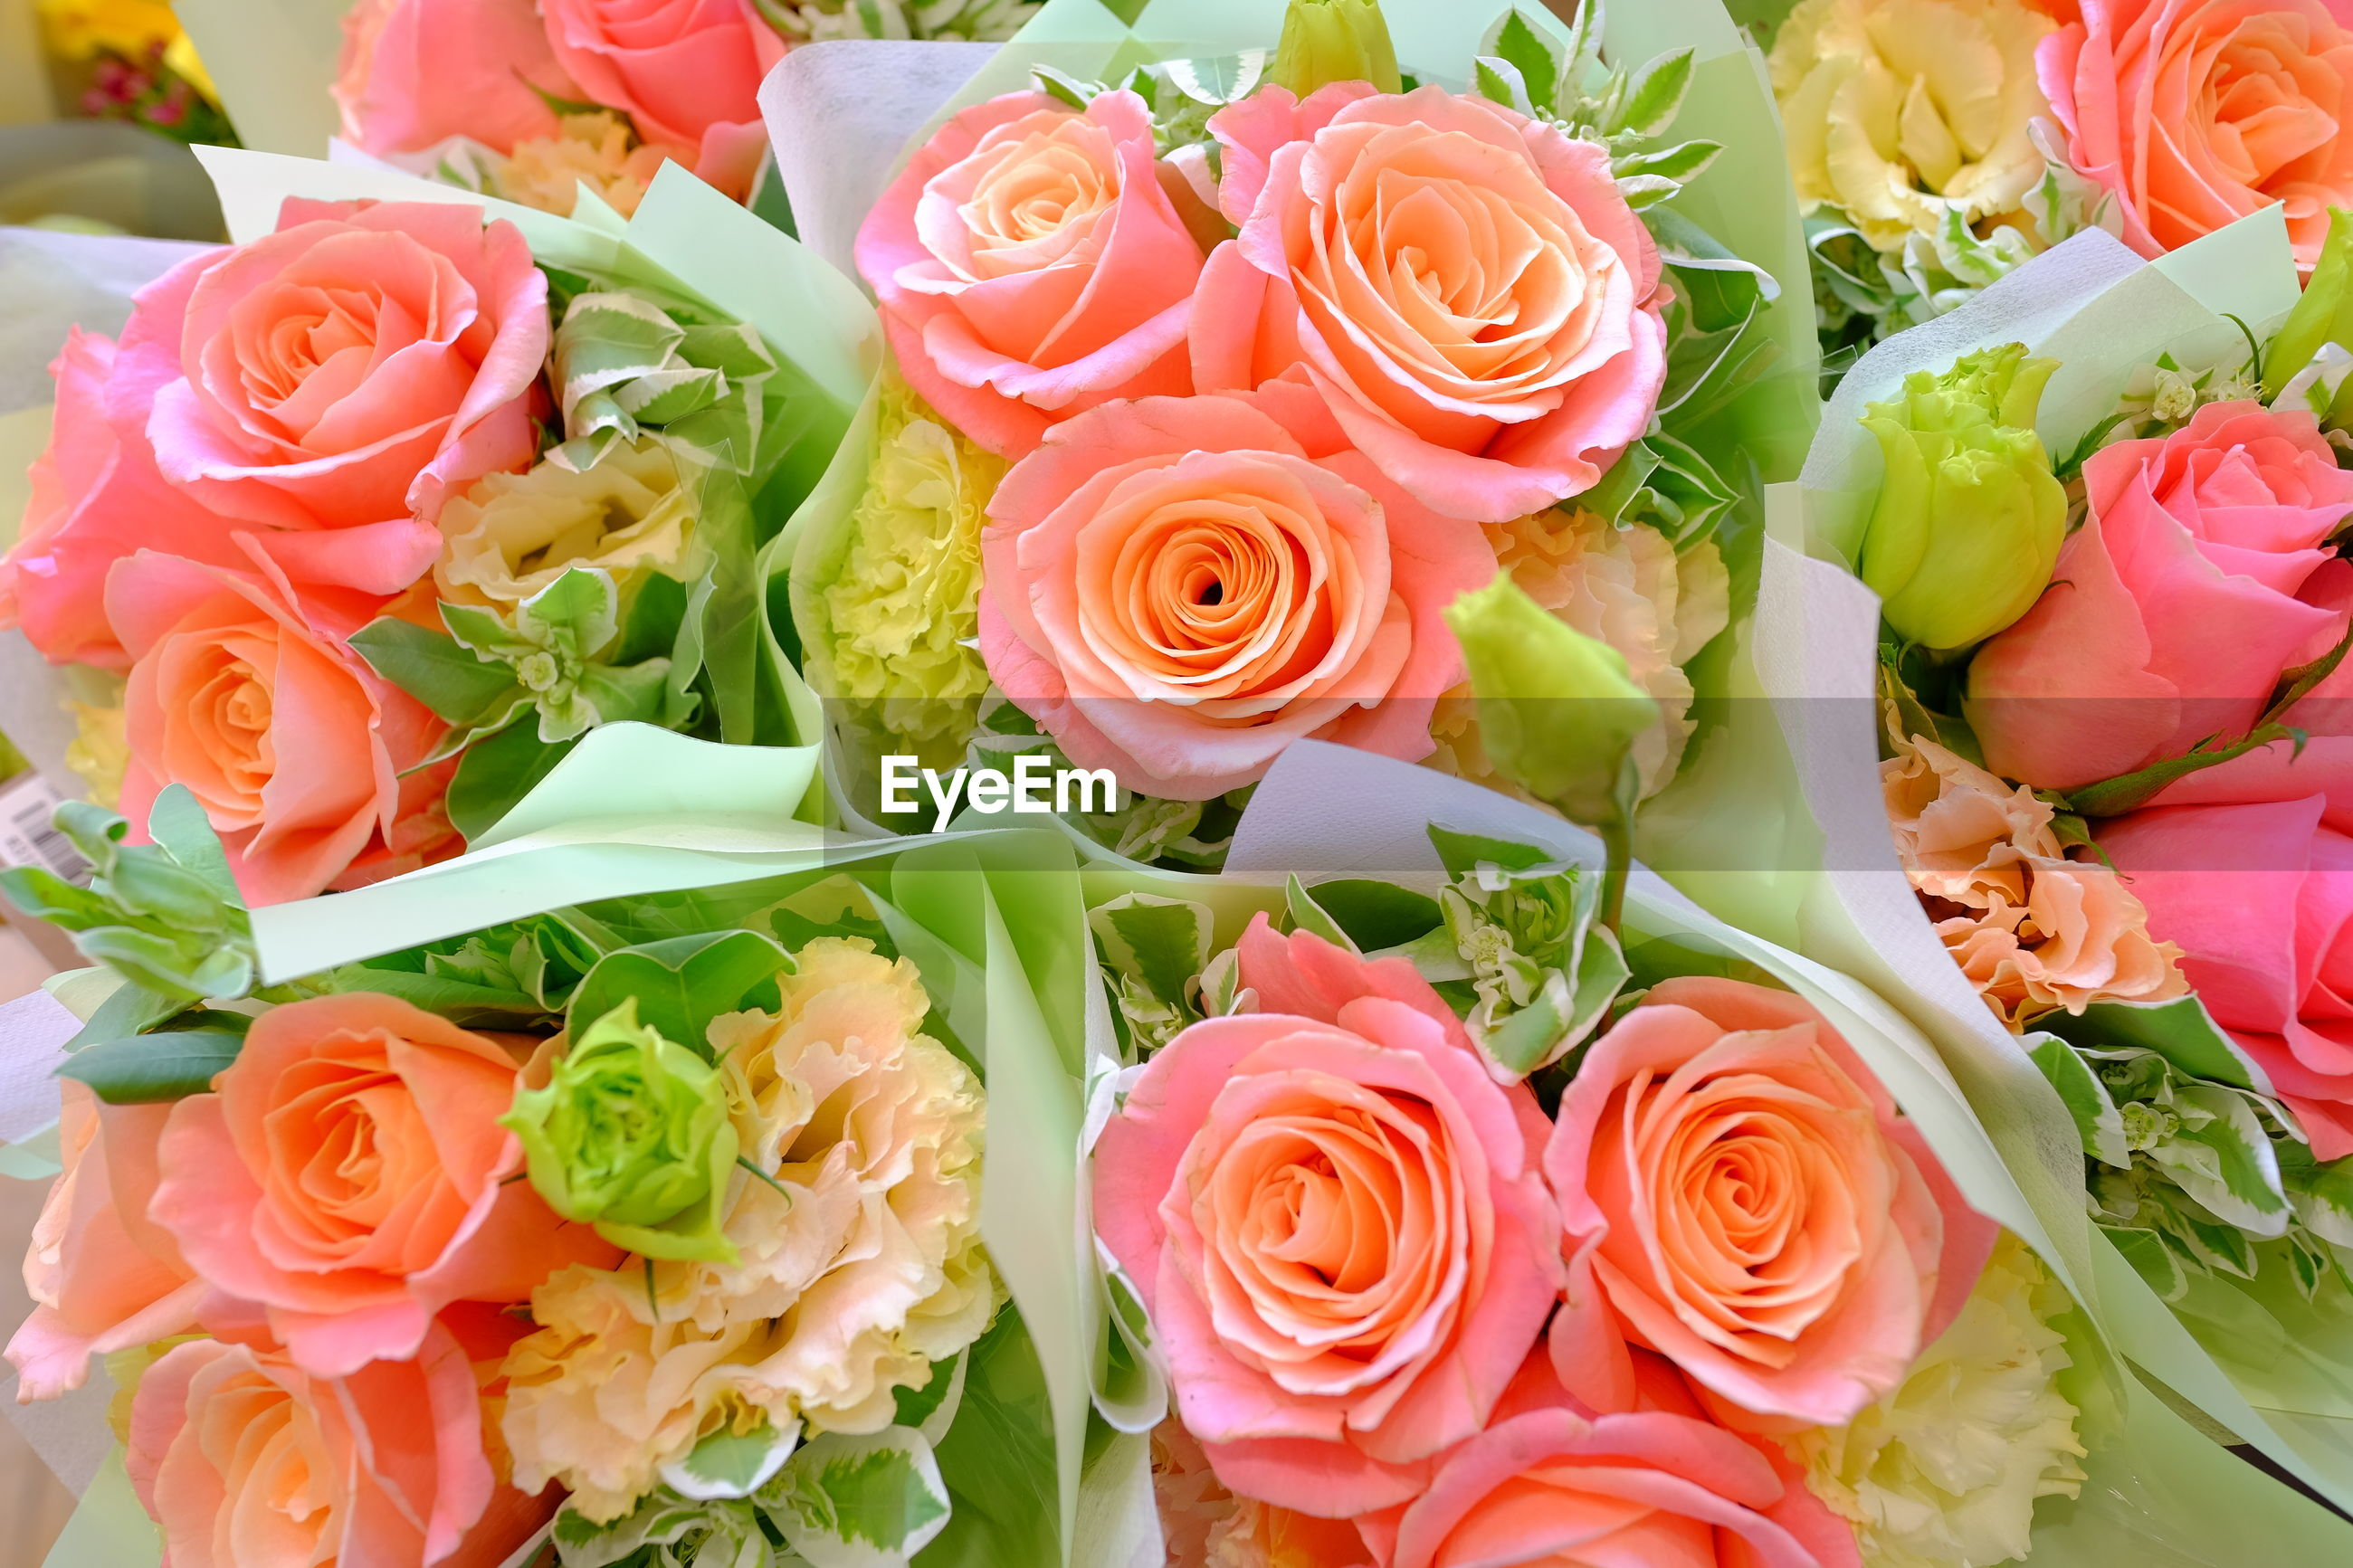 CLOSE-UP OF ROSES ON BOUQUET